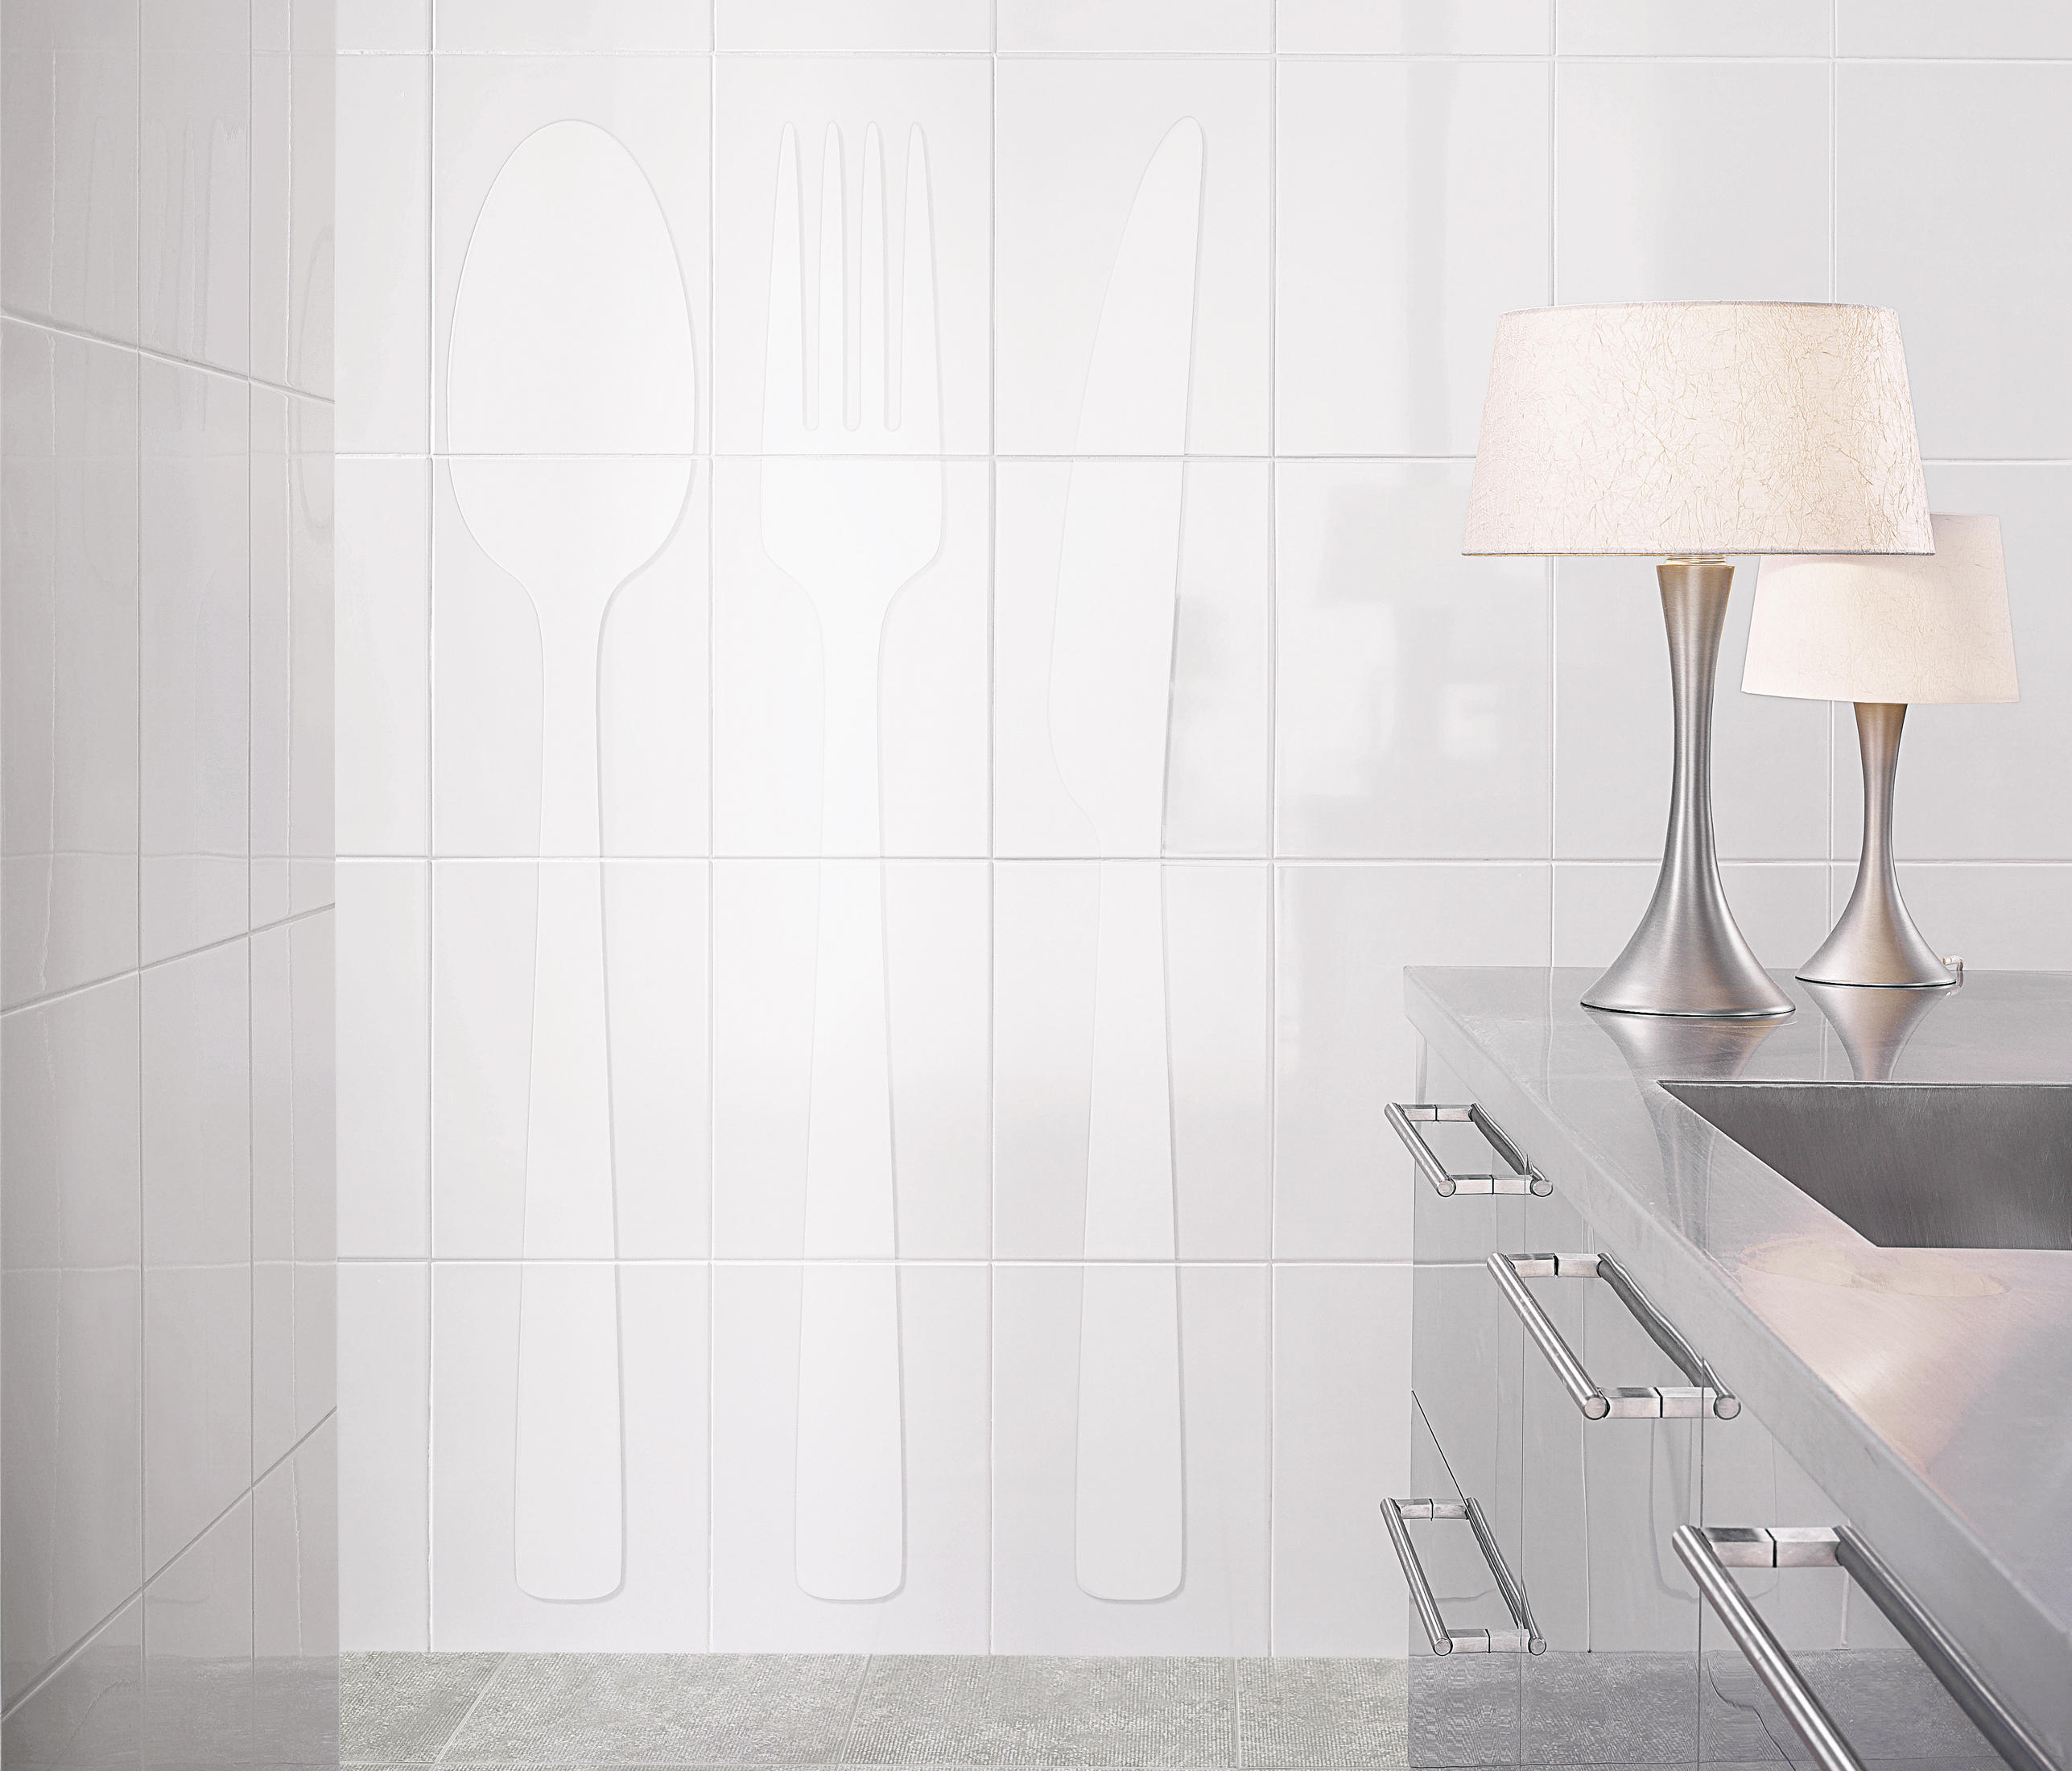 Blanco Brillo Ceramic Tiles From Vives Cer Mica Architonic